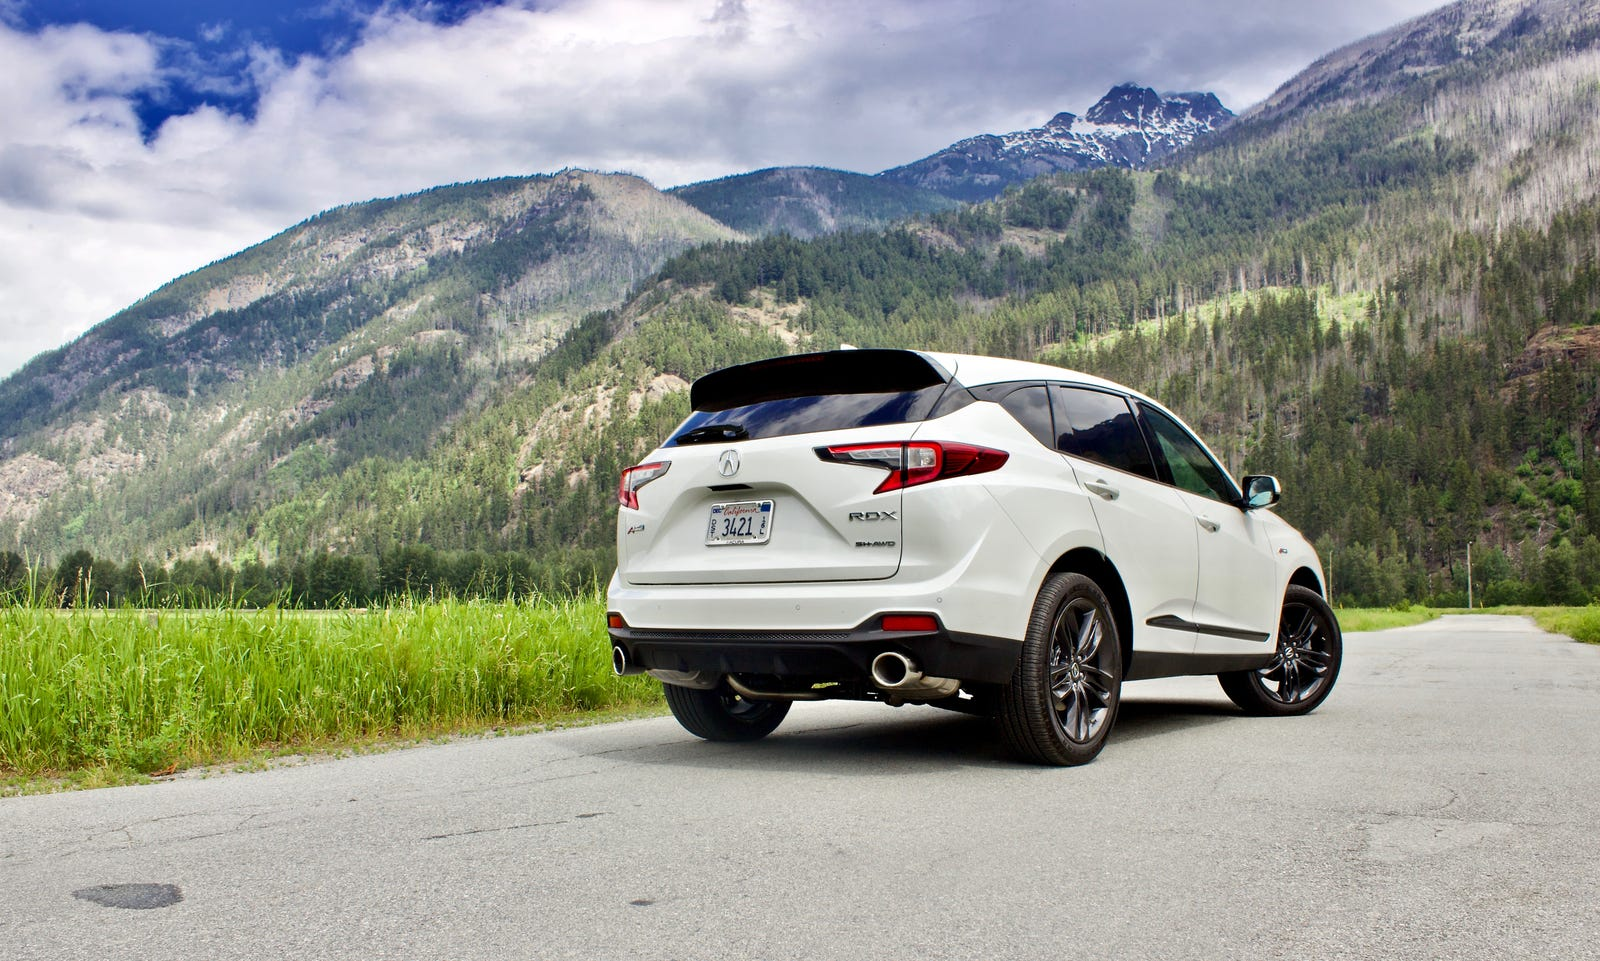 The 2019 Acura Rdx Is Grown Up And Ready To Sell Like Crazy